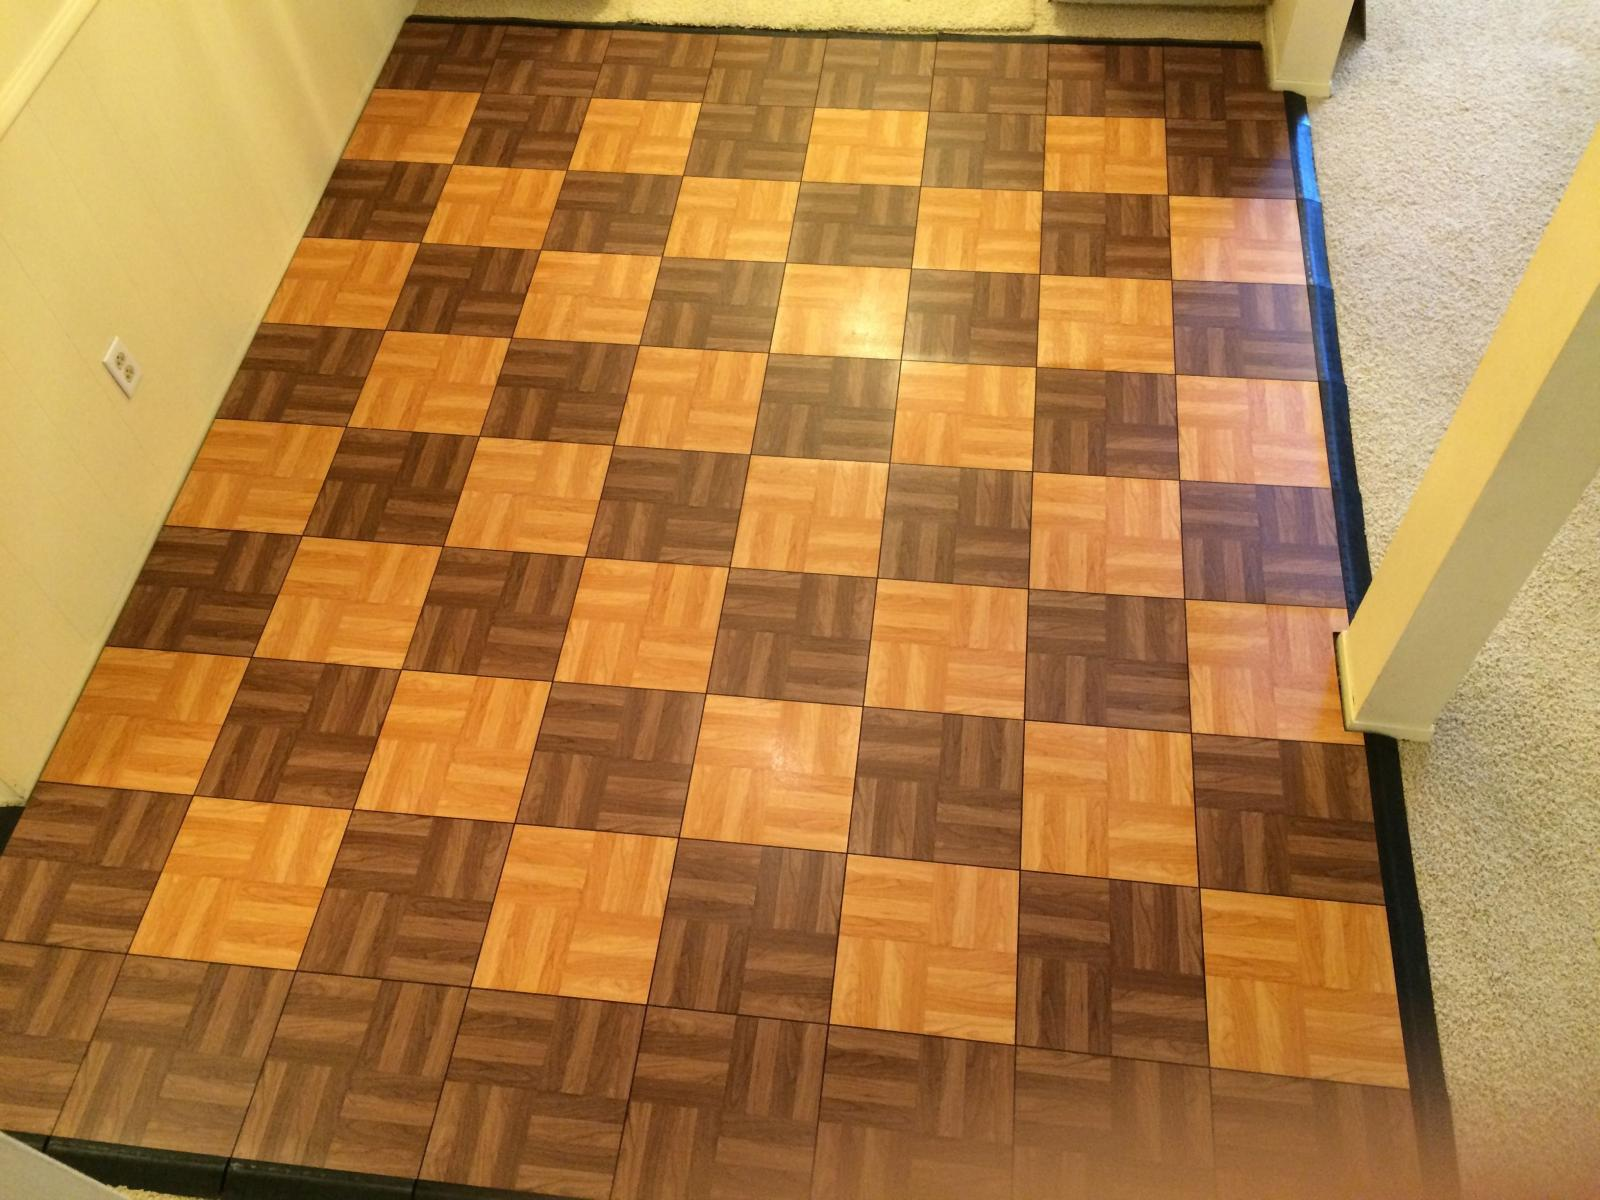 Greatmats Max Tile Portable Dance Installed Over Carpet There Are Many Options For Flooring